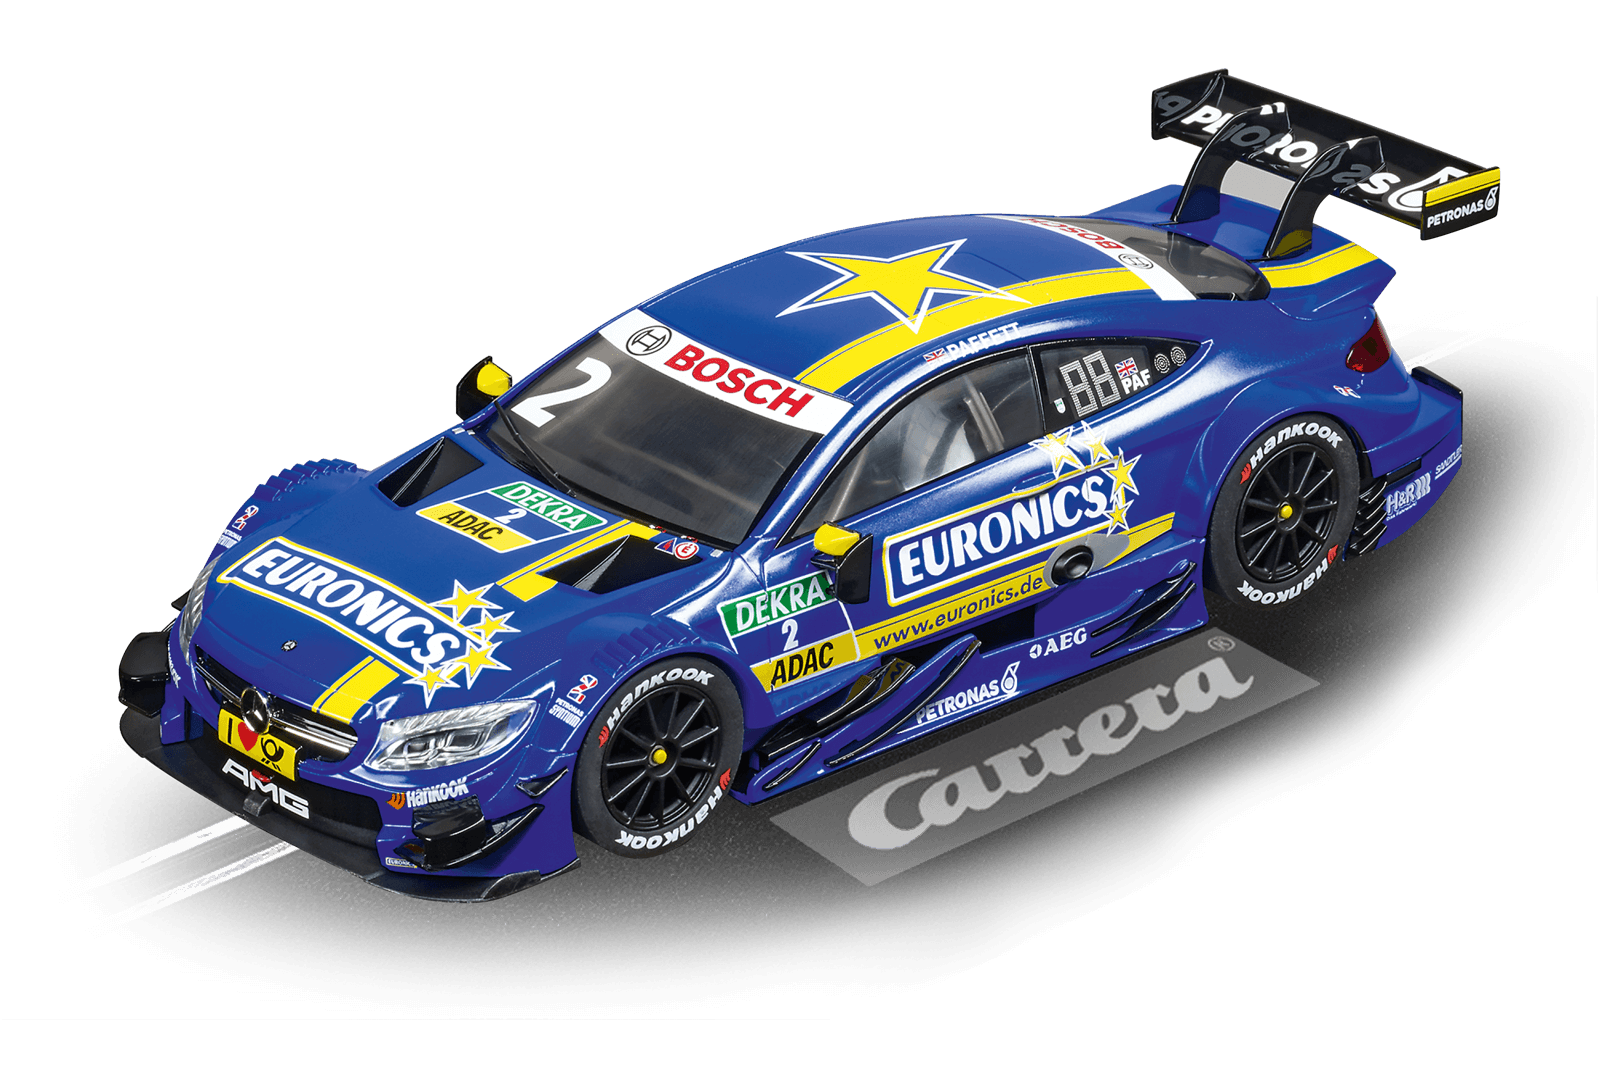 Mercedes-AMG C 63 DTM G. Paffett No.2 20023844 Carrera Digital 124